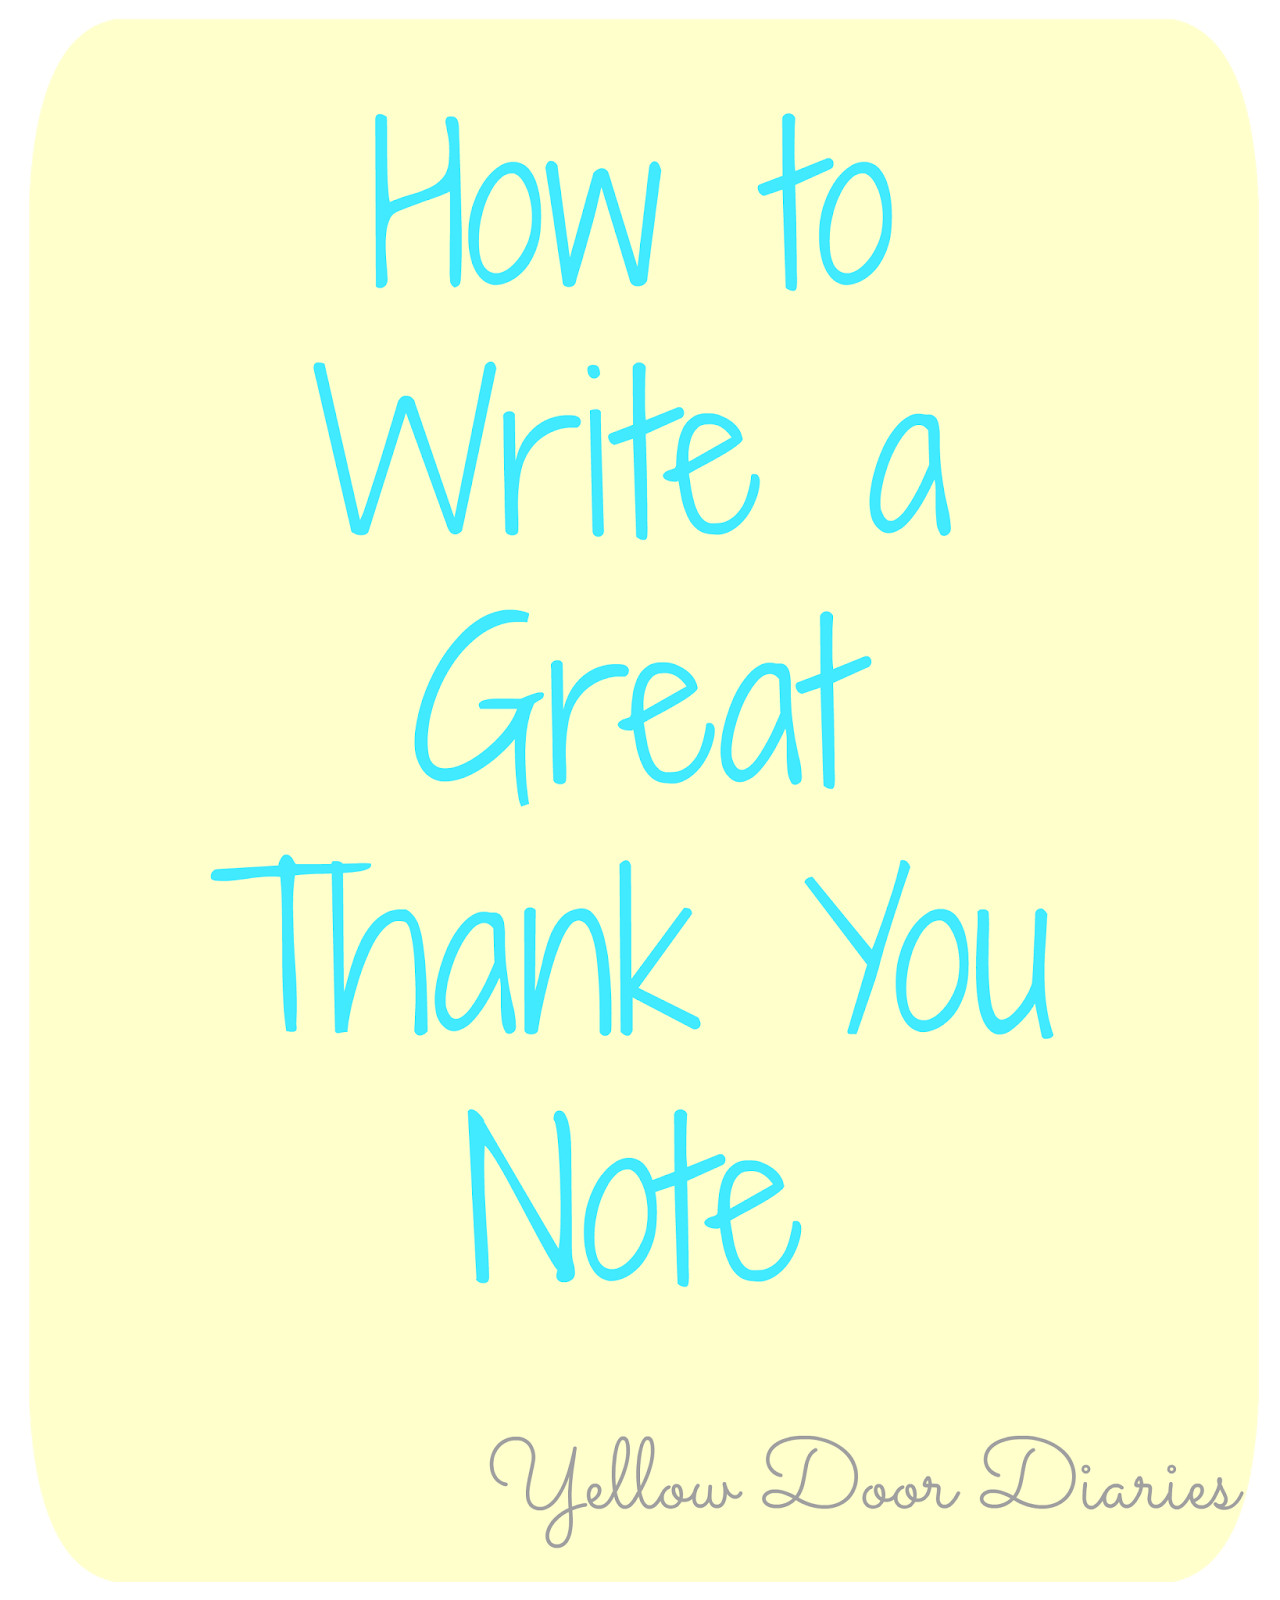 Yellow door diaries how to write a great thank you note how to write a great thank you note expocarfo